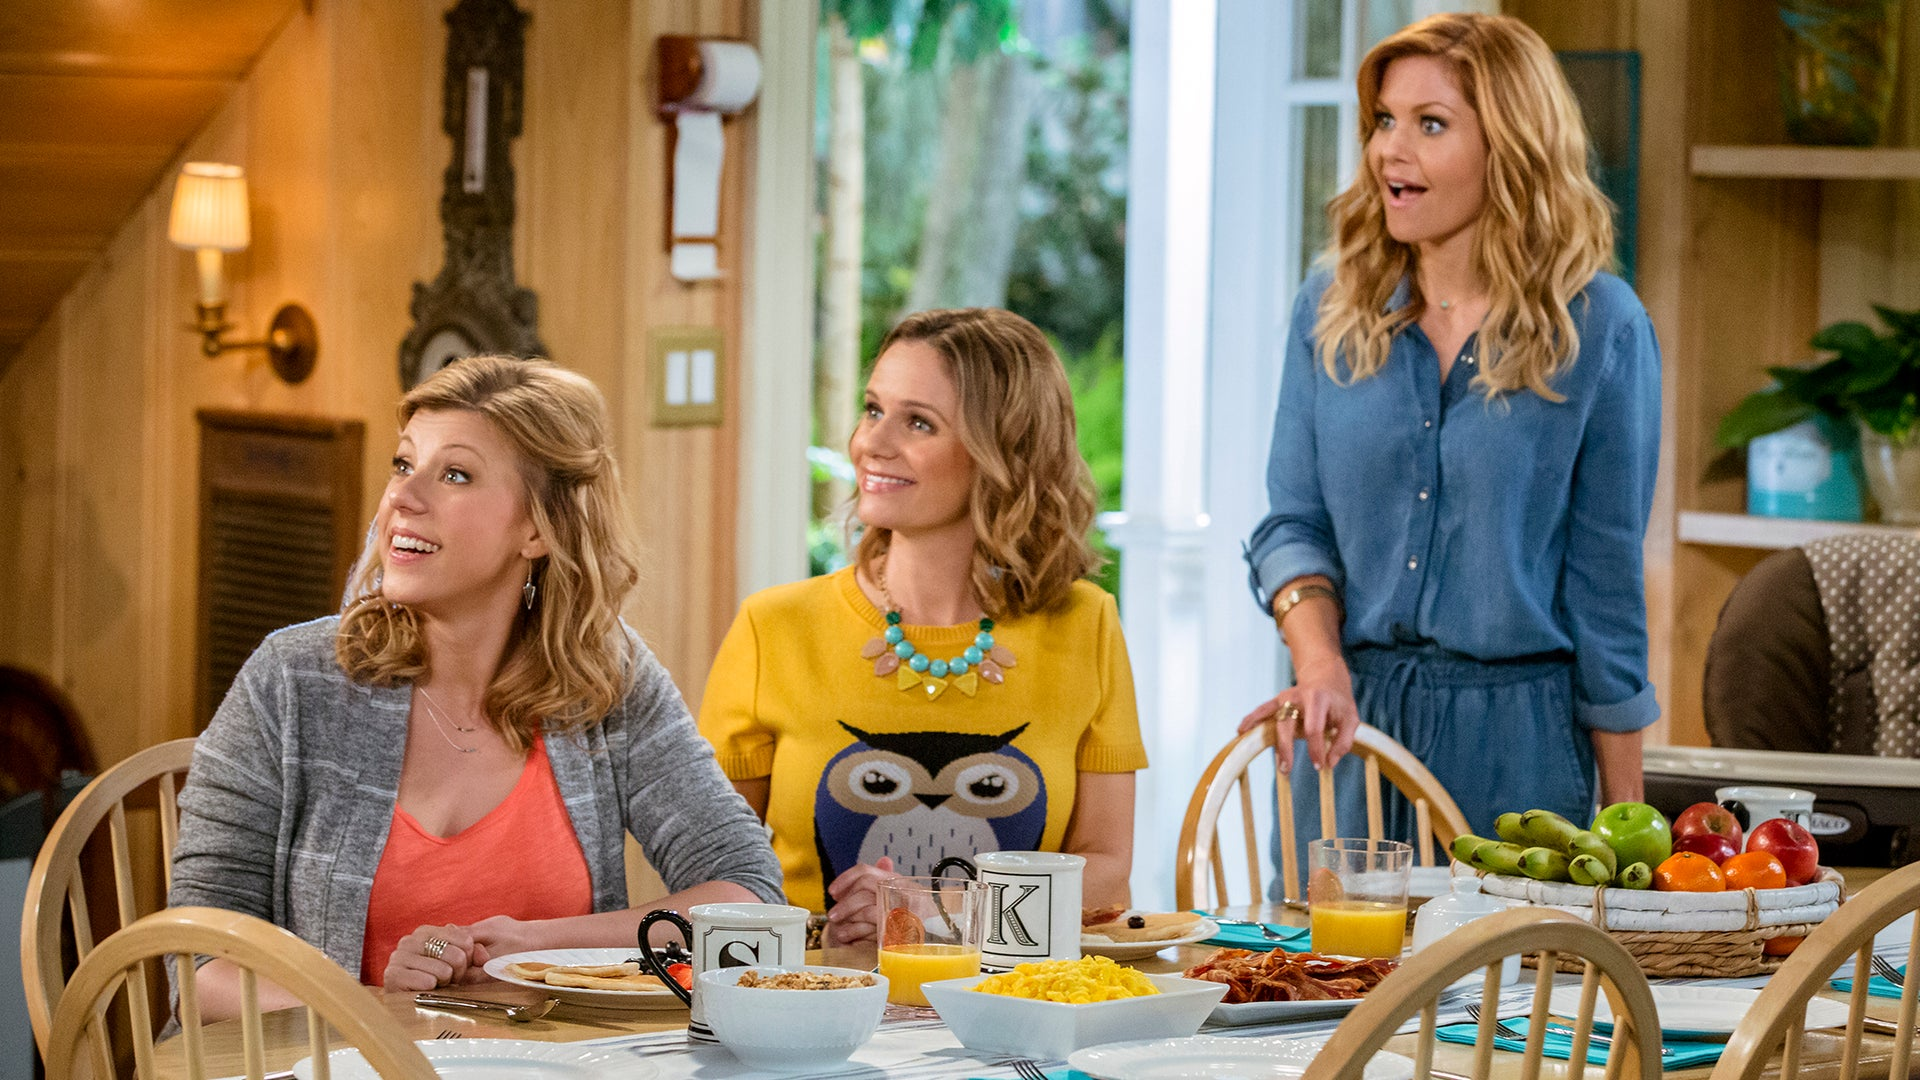 Jodie Sweetin, Andrea Barber and Candace Cameron Bure, Fuller House